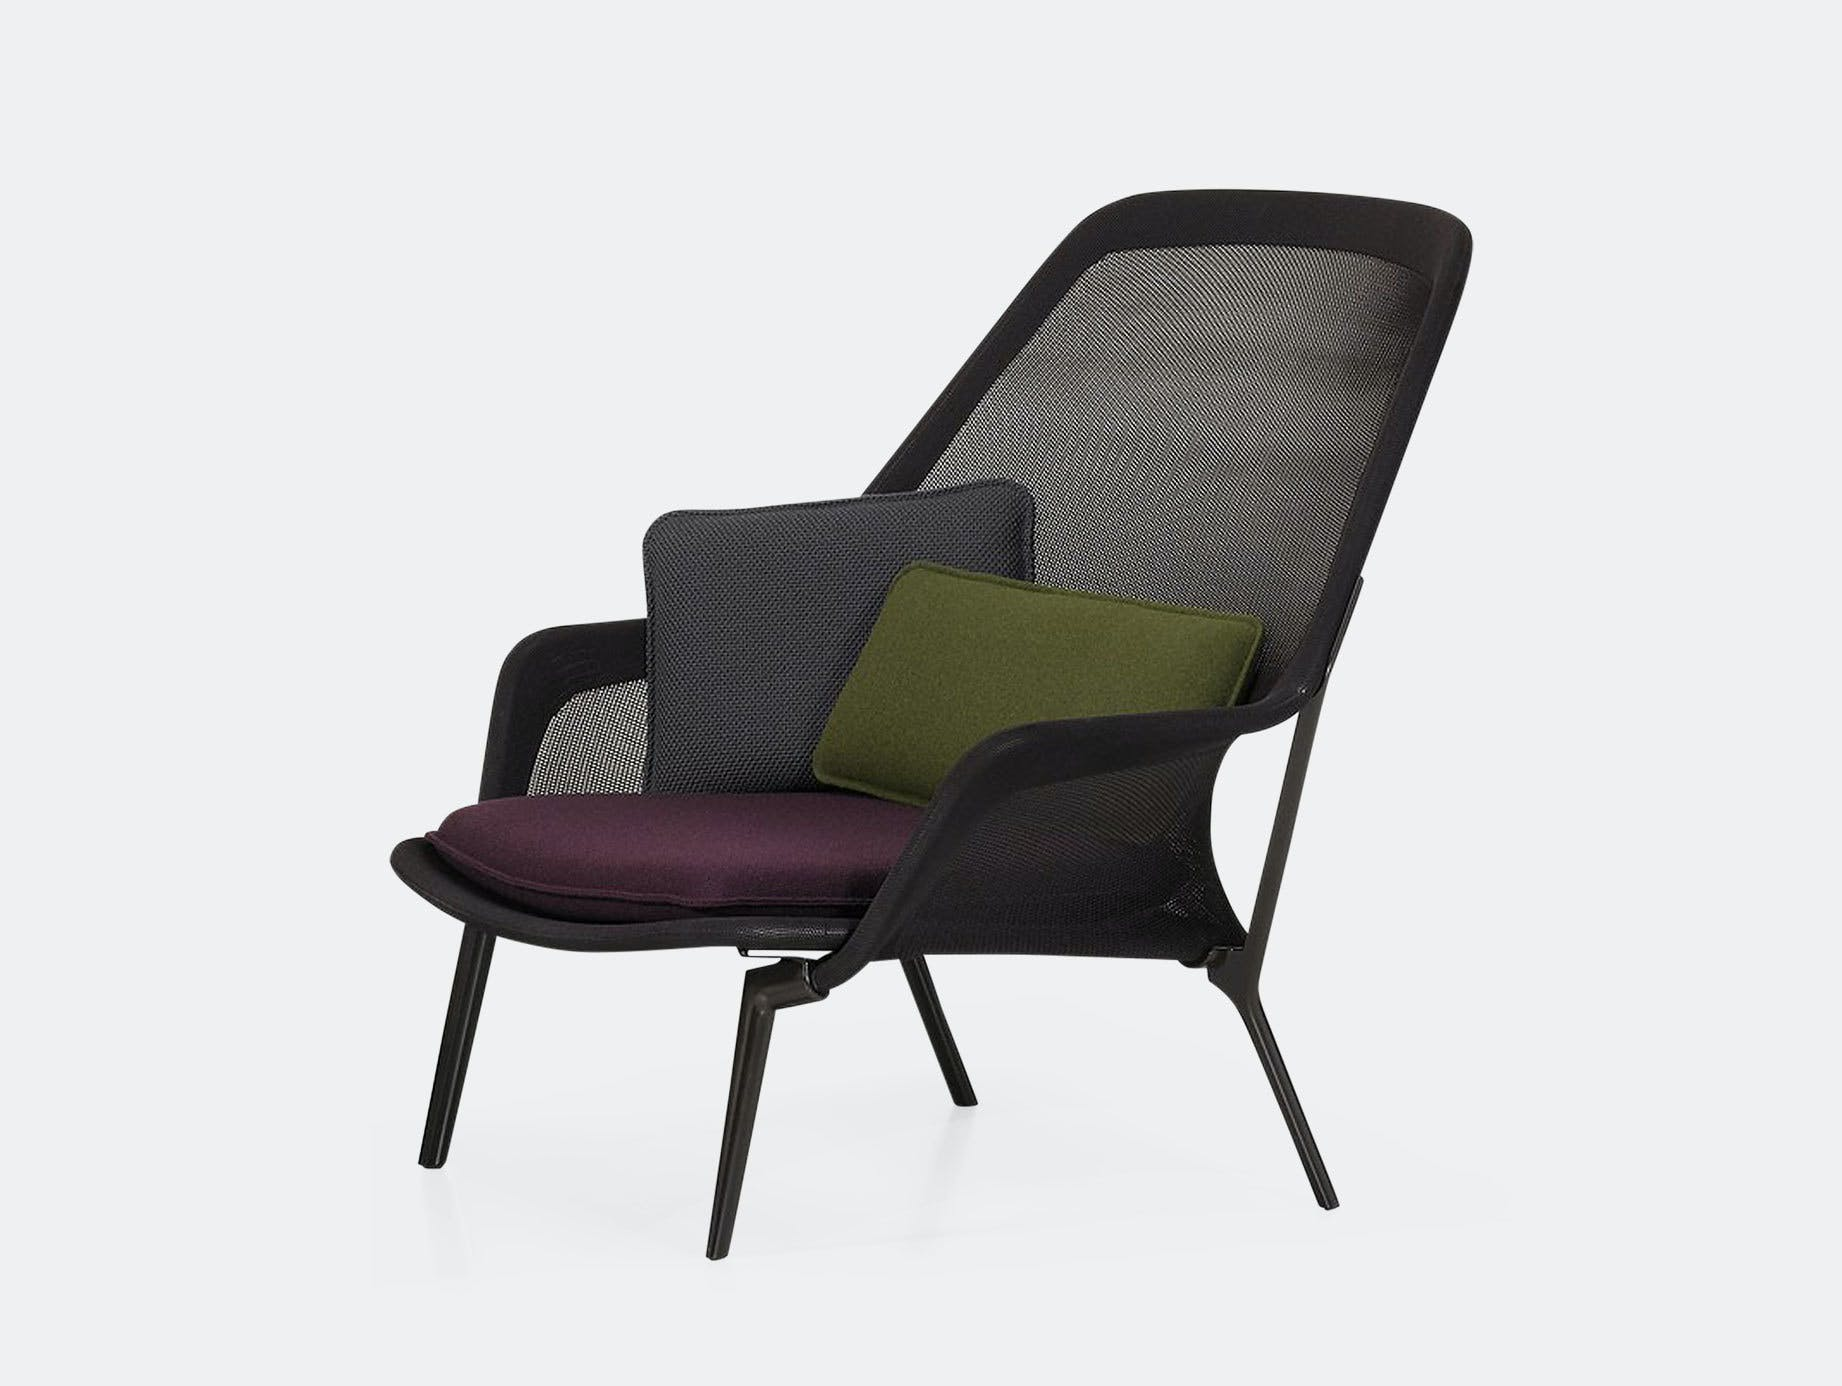 Slow Chair image